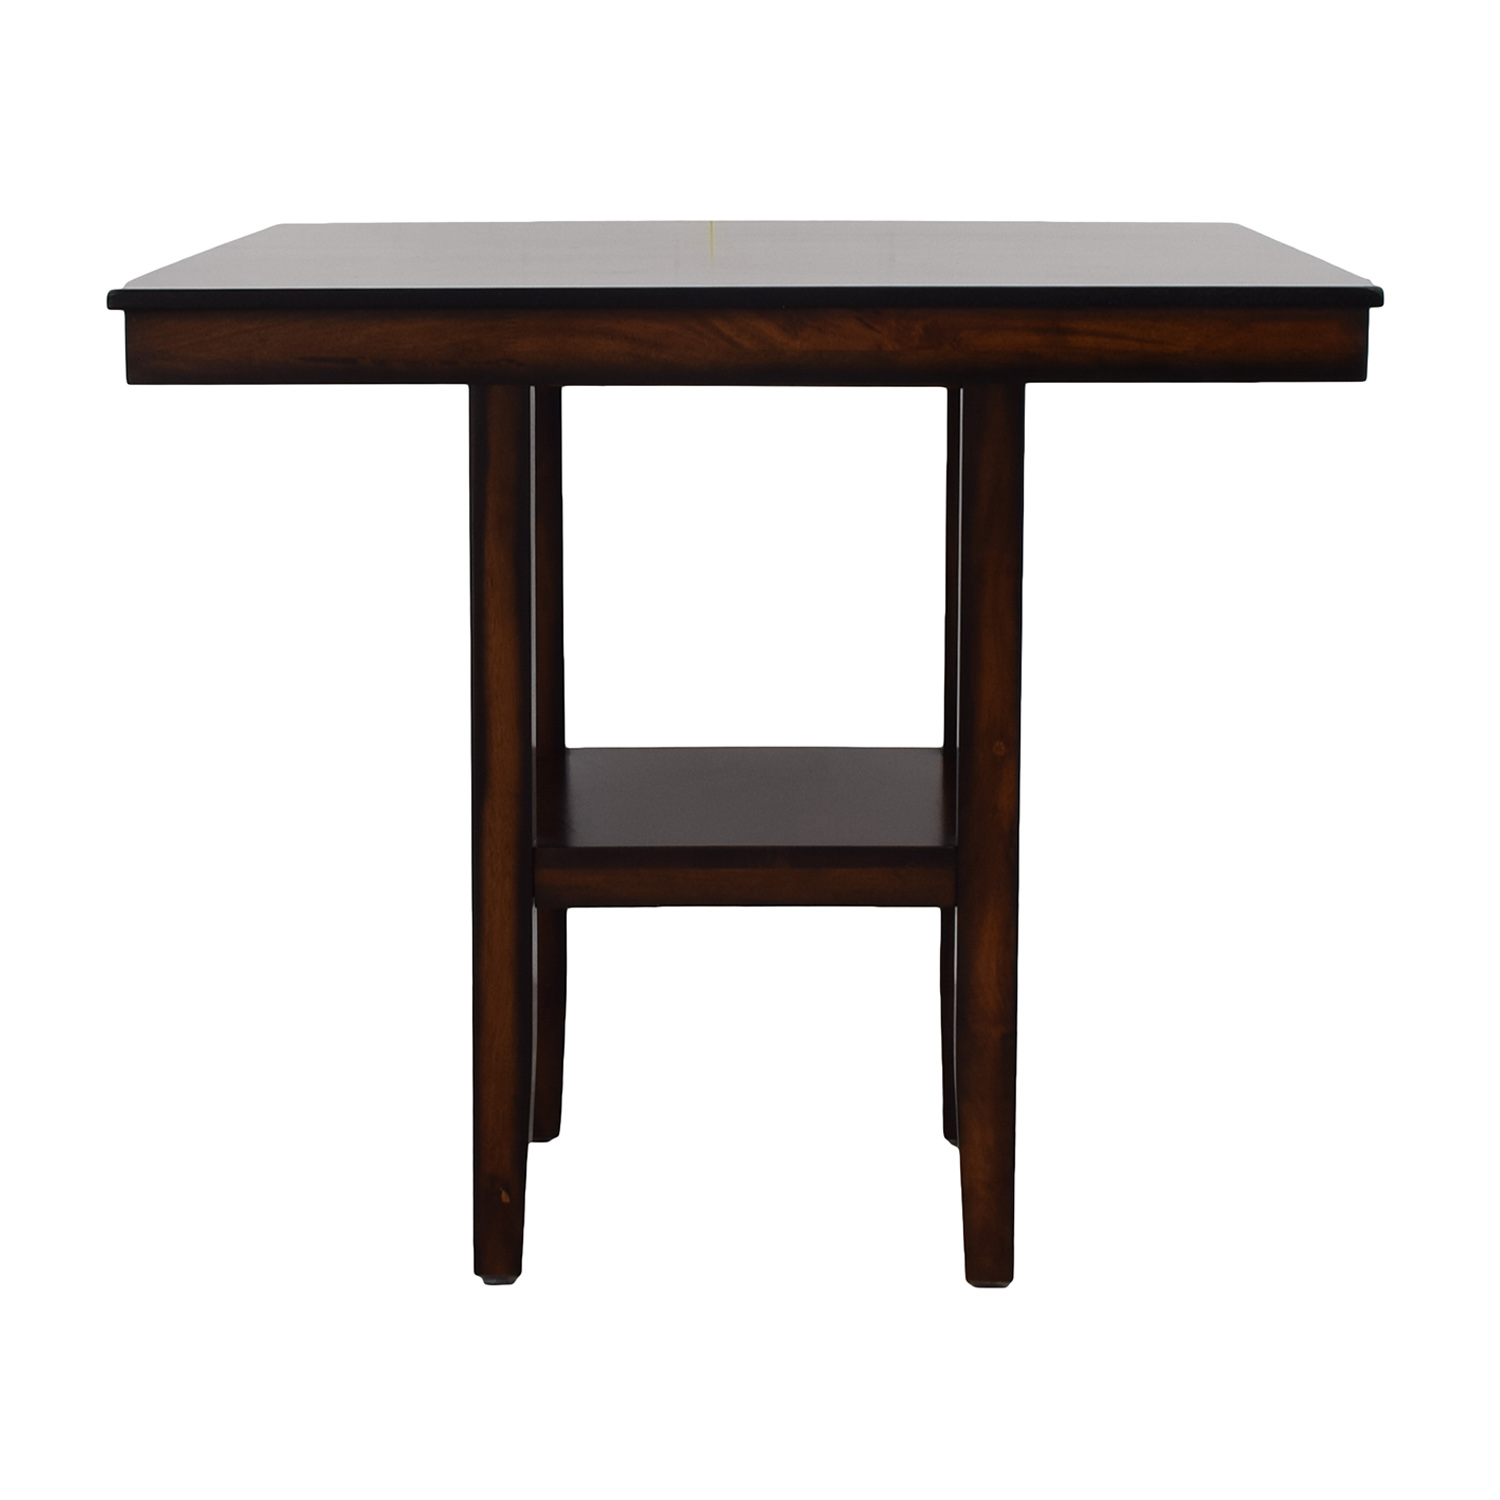 shop Macy's Macy's Wood Dining Table online